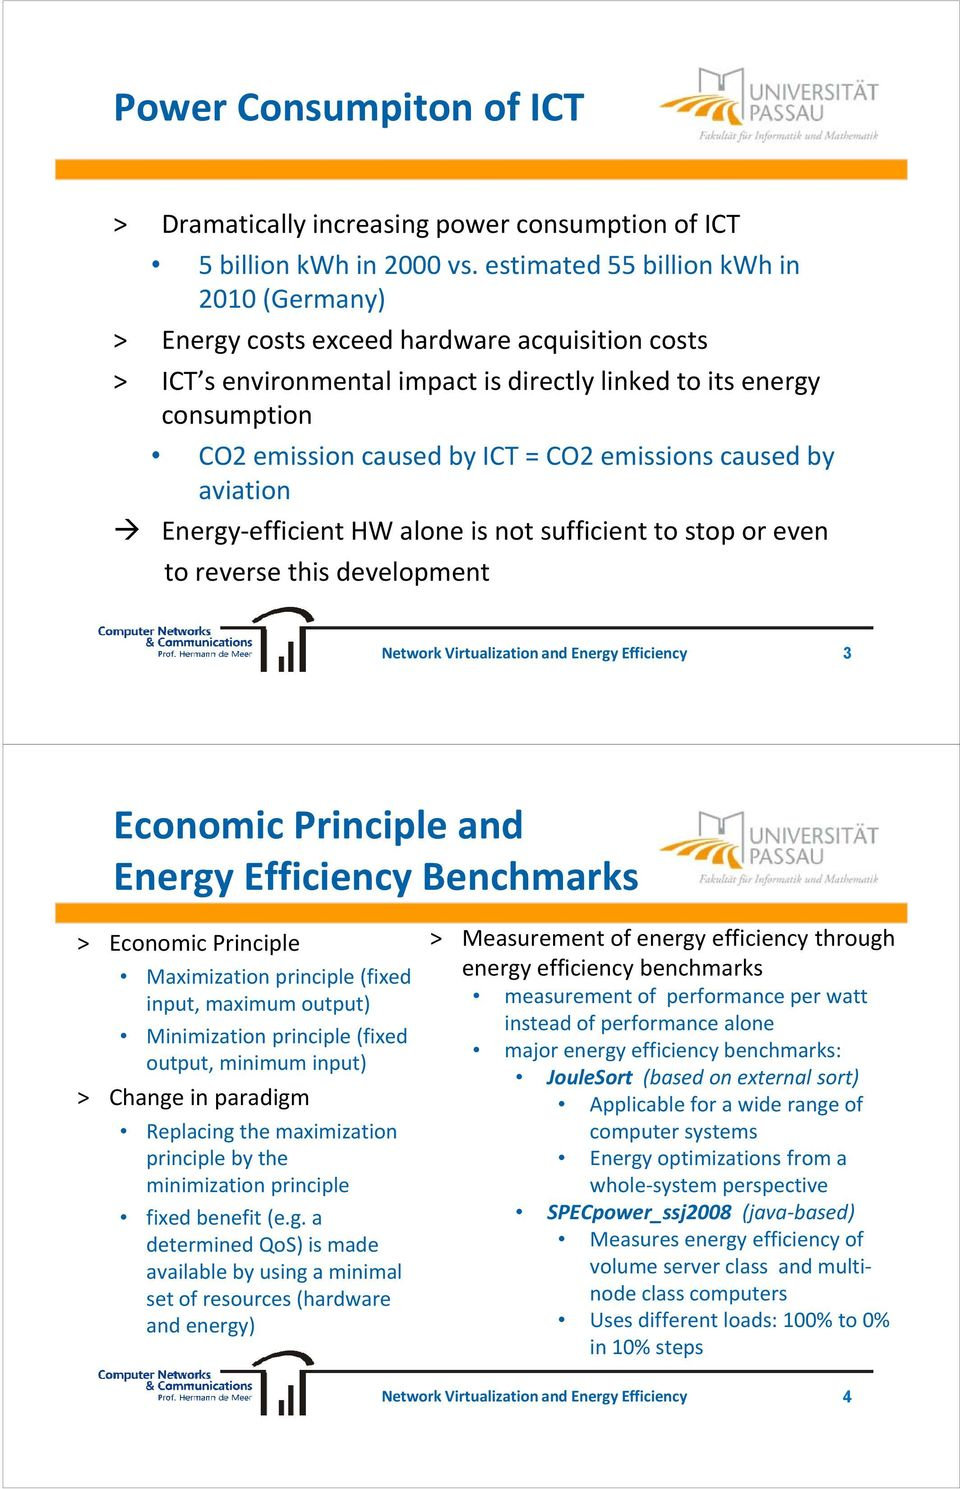 emissions caused by aviation Energy-efficient HW alone is not sufficient to stop or even to reverse this development 3 Economic Principle and Energy Efficiency Benchmarks > Economic Principle